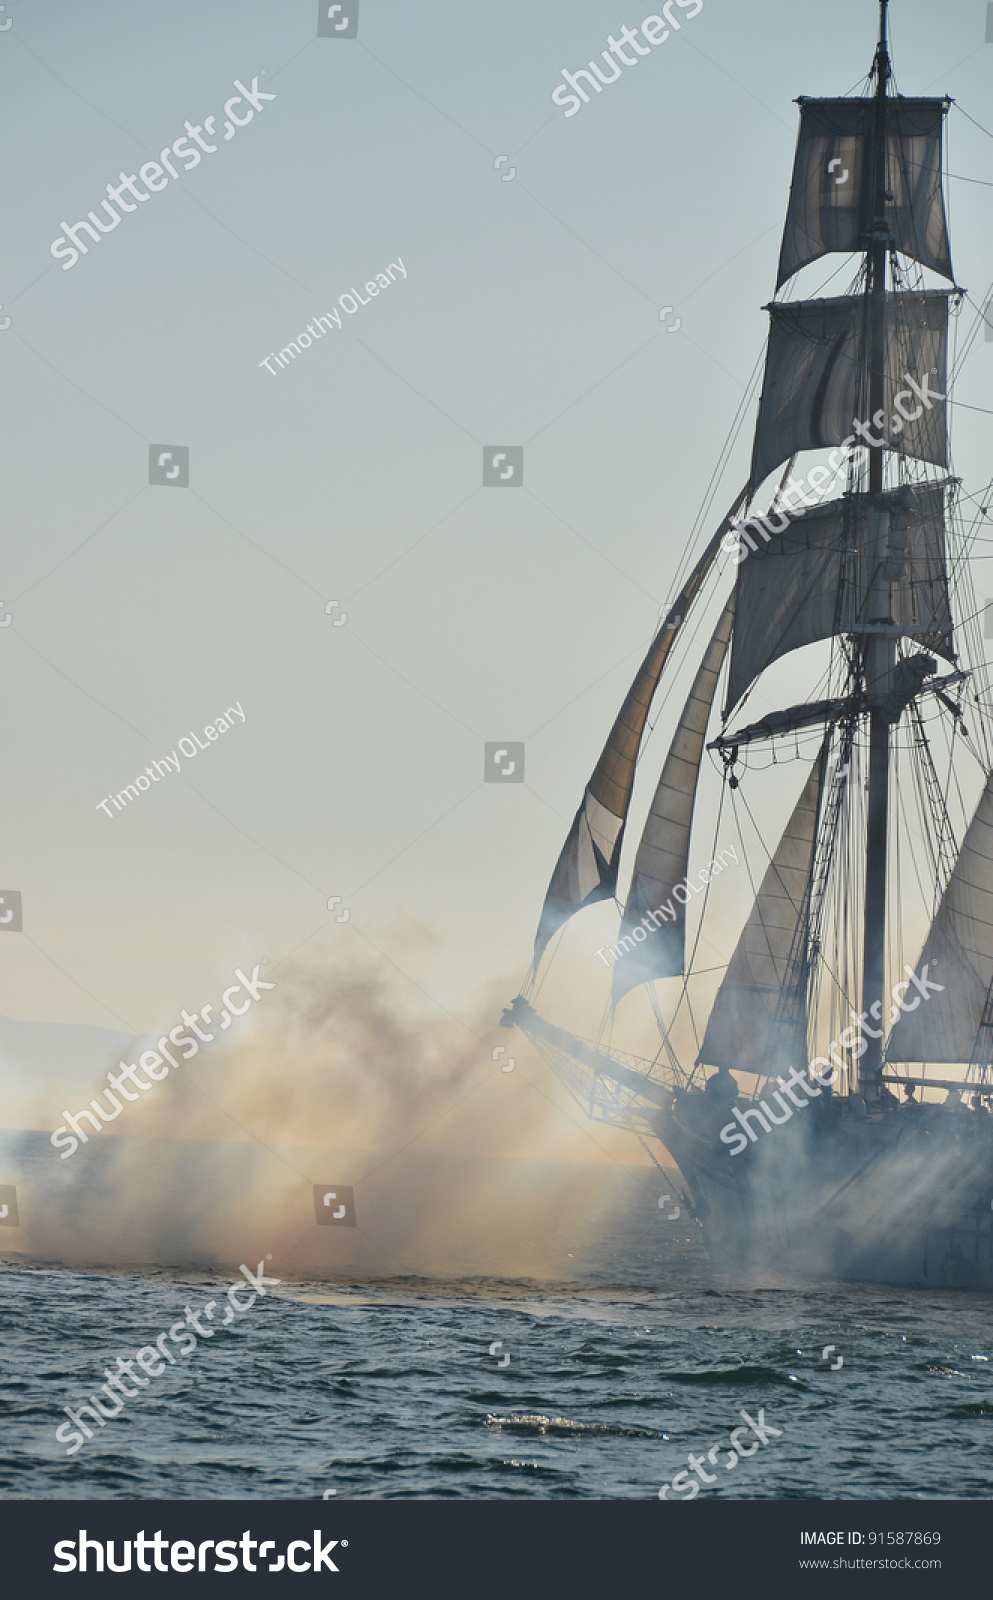 sailing ship fire smoke - photo #1